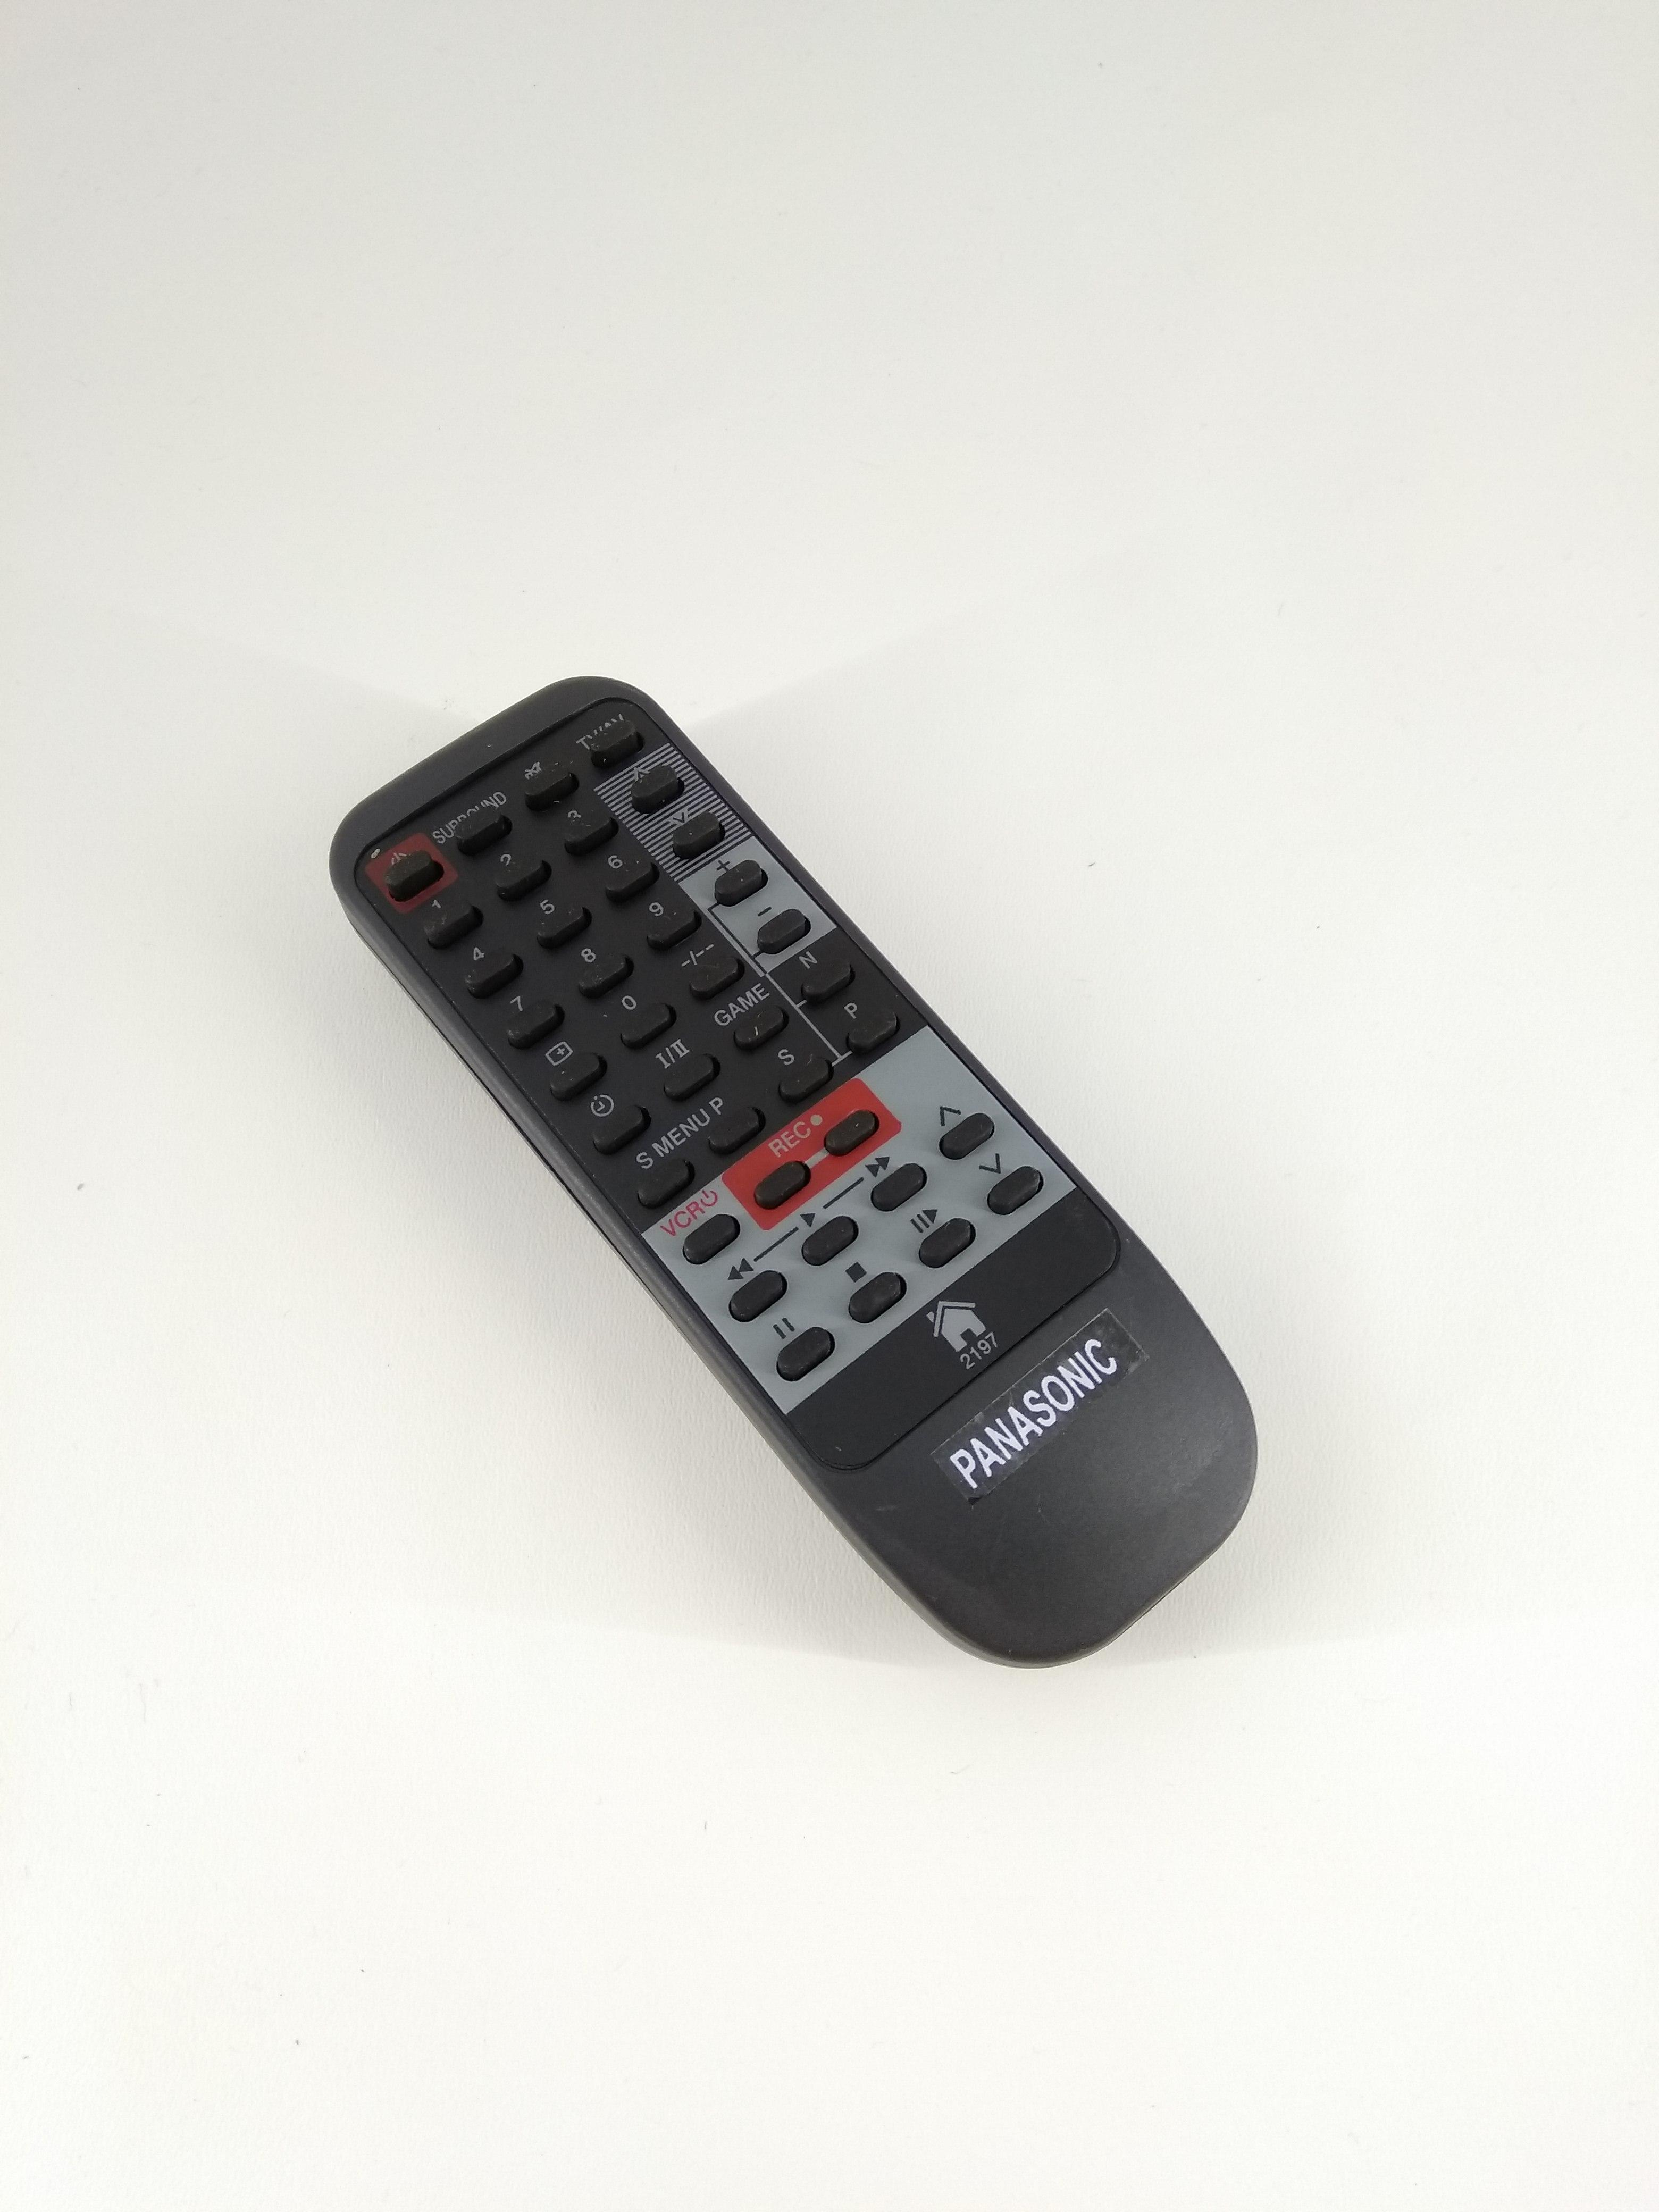 Remot Remote TV Panasonic Tabung 2197 Original Pabrik / KW